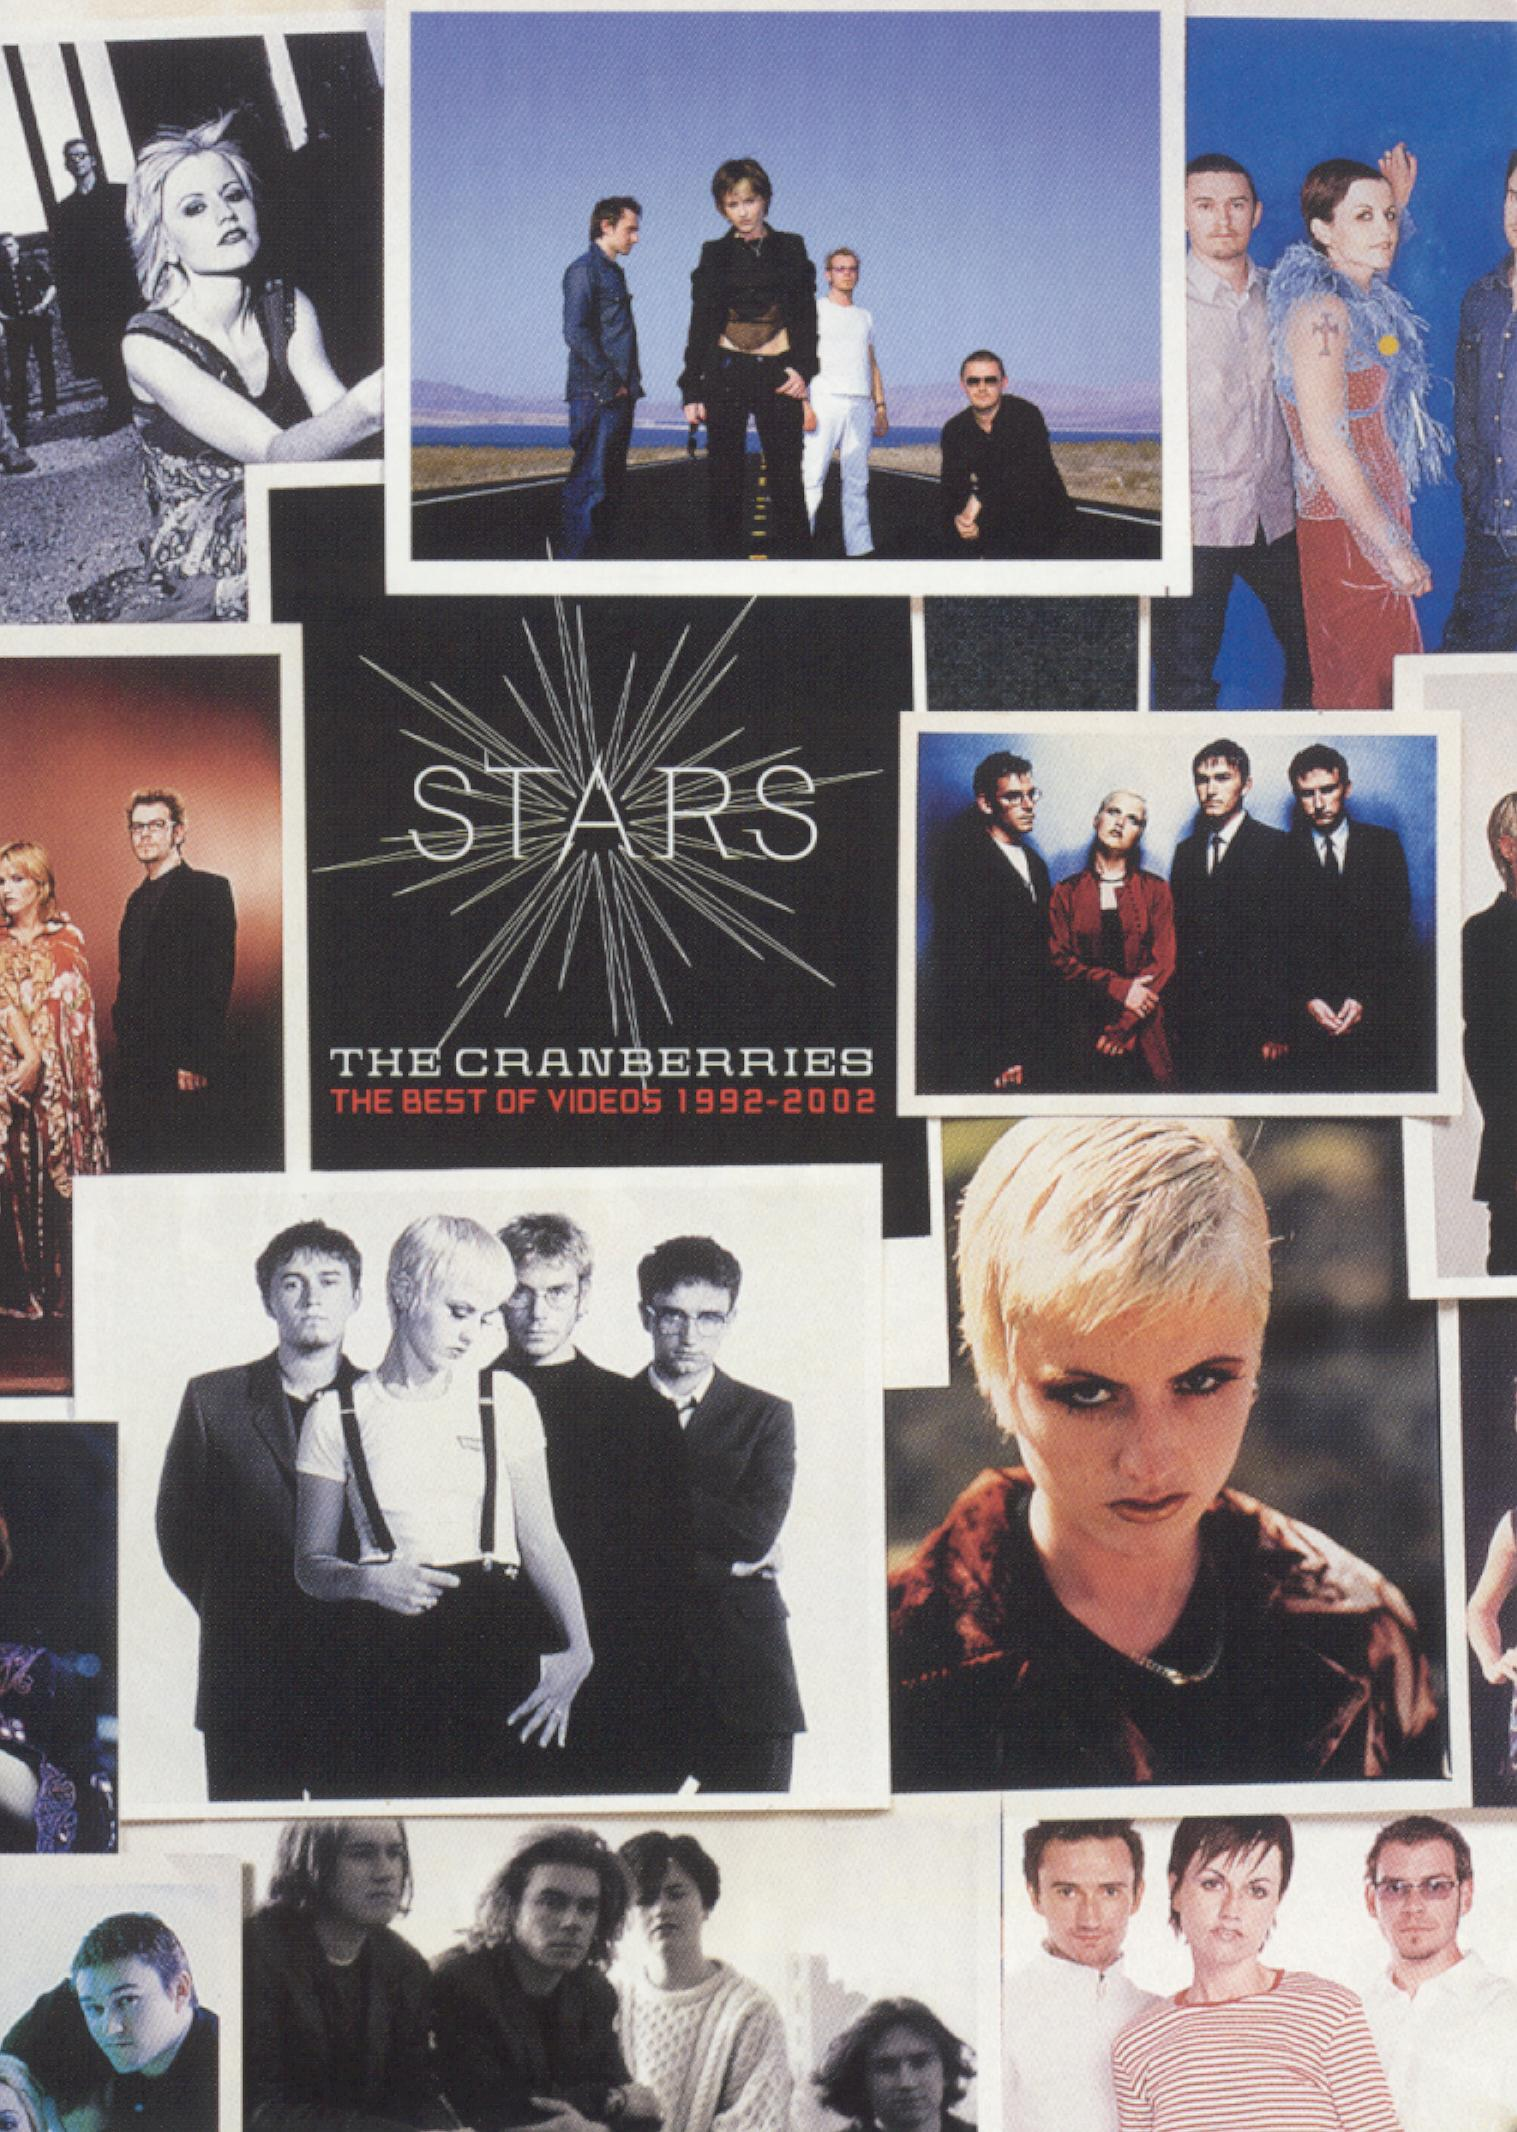 The Cranberries: Stars - The Best of Videos 1992-2002